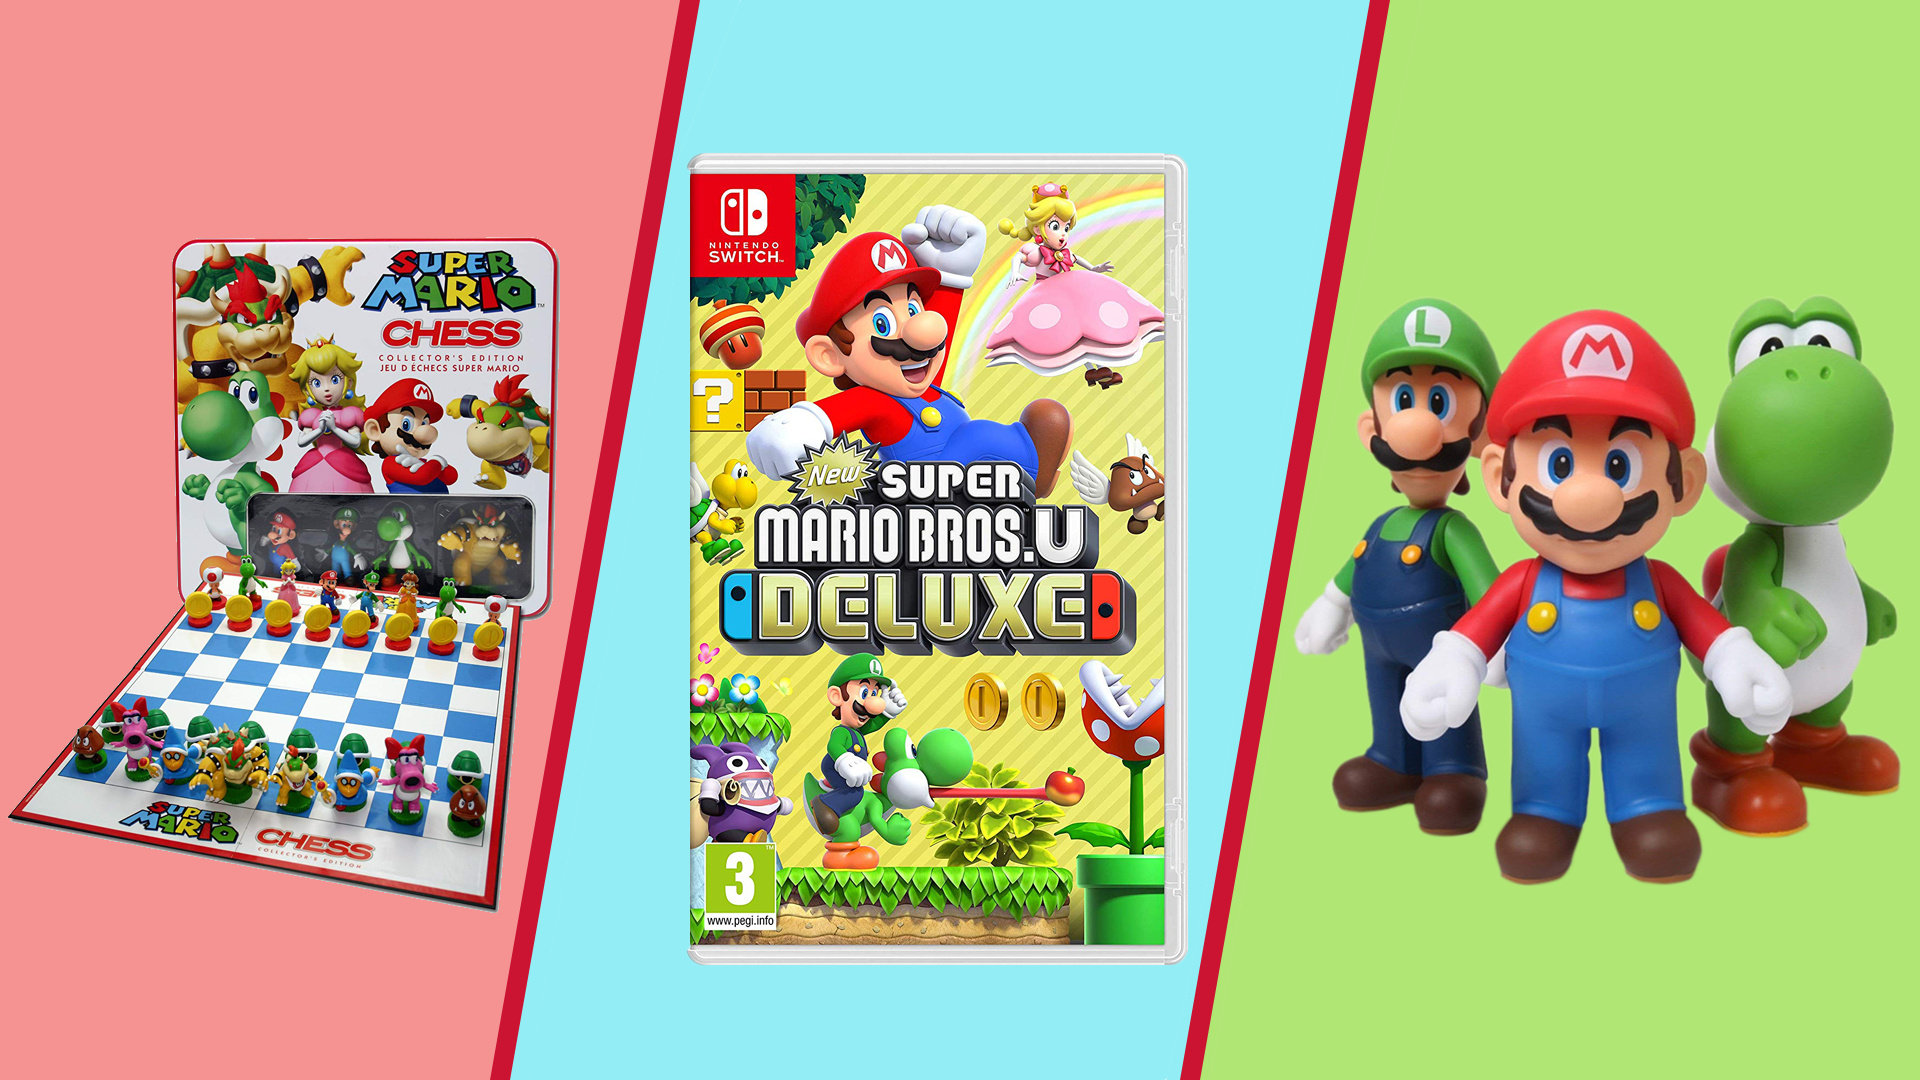 Best Super Mario Games, Toys And Merchandise - Guide - Nintendo Life